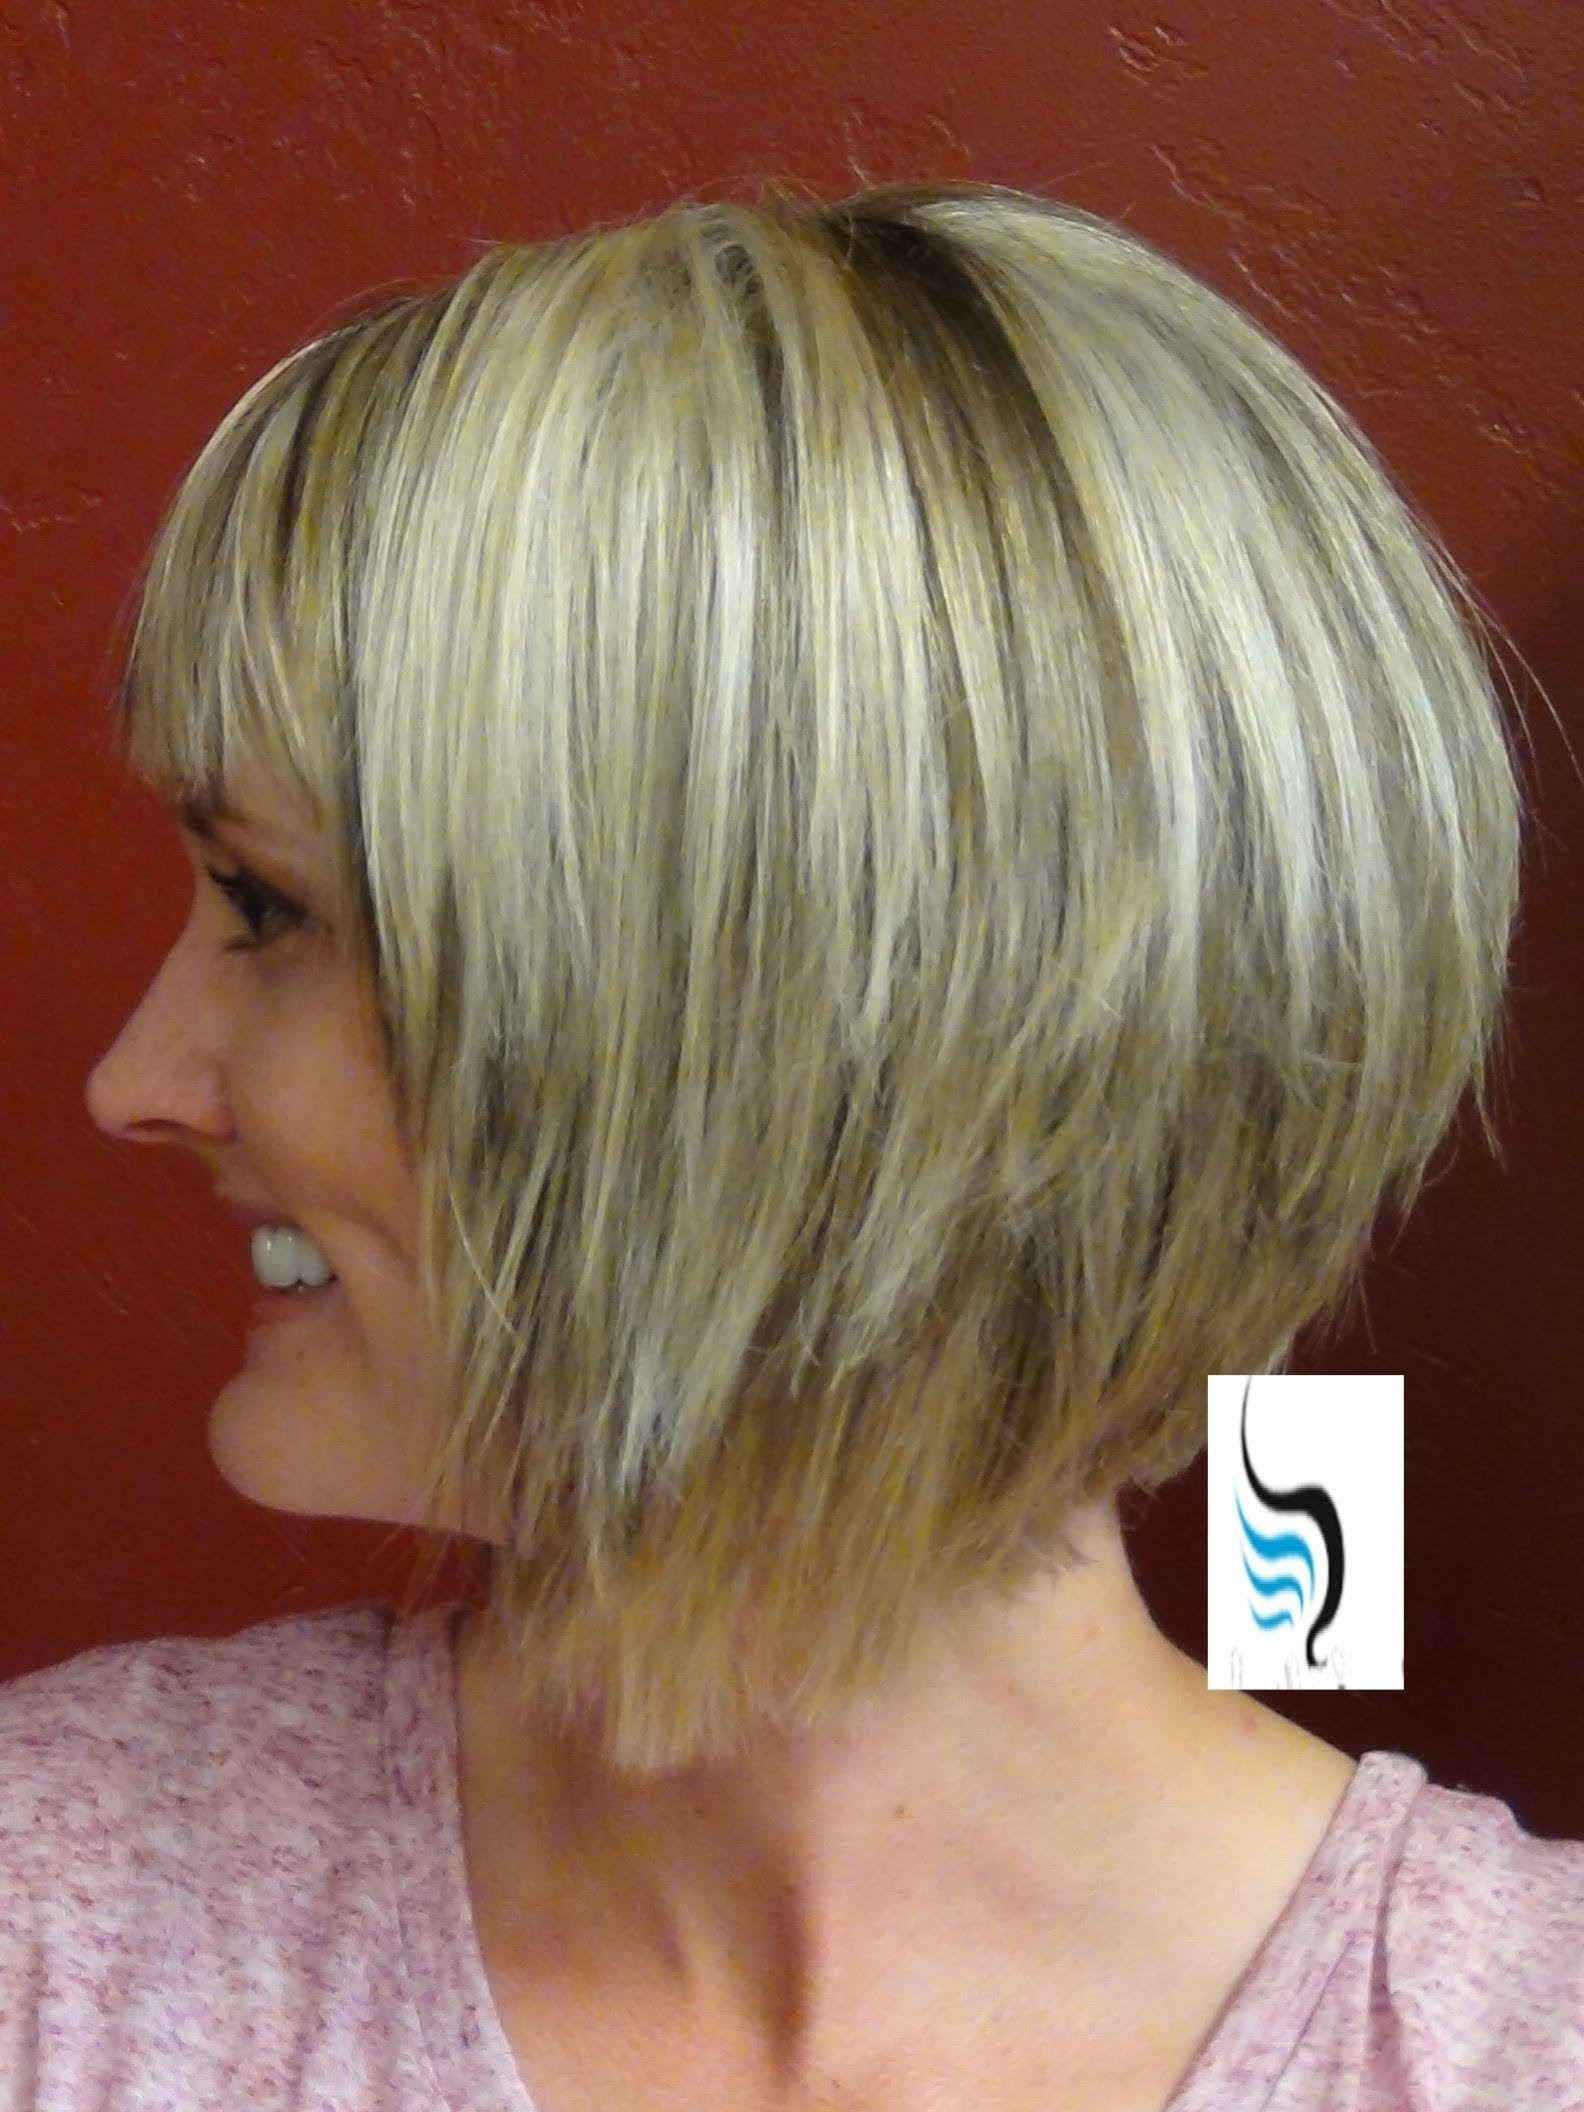 A Line Hairstyles With (Short Haircuts And Bangs) – Youtube With Regard To Most Up To Date Line Pixie Hairstyles (View 4 of 15)